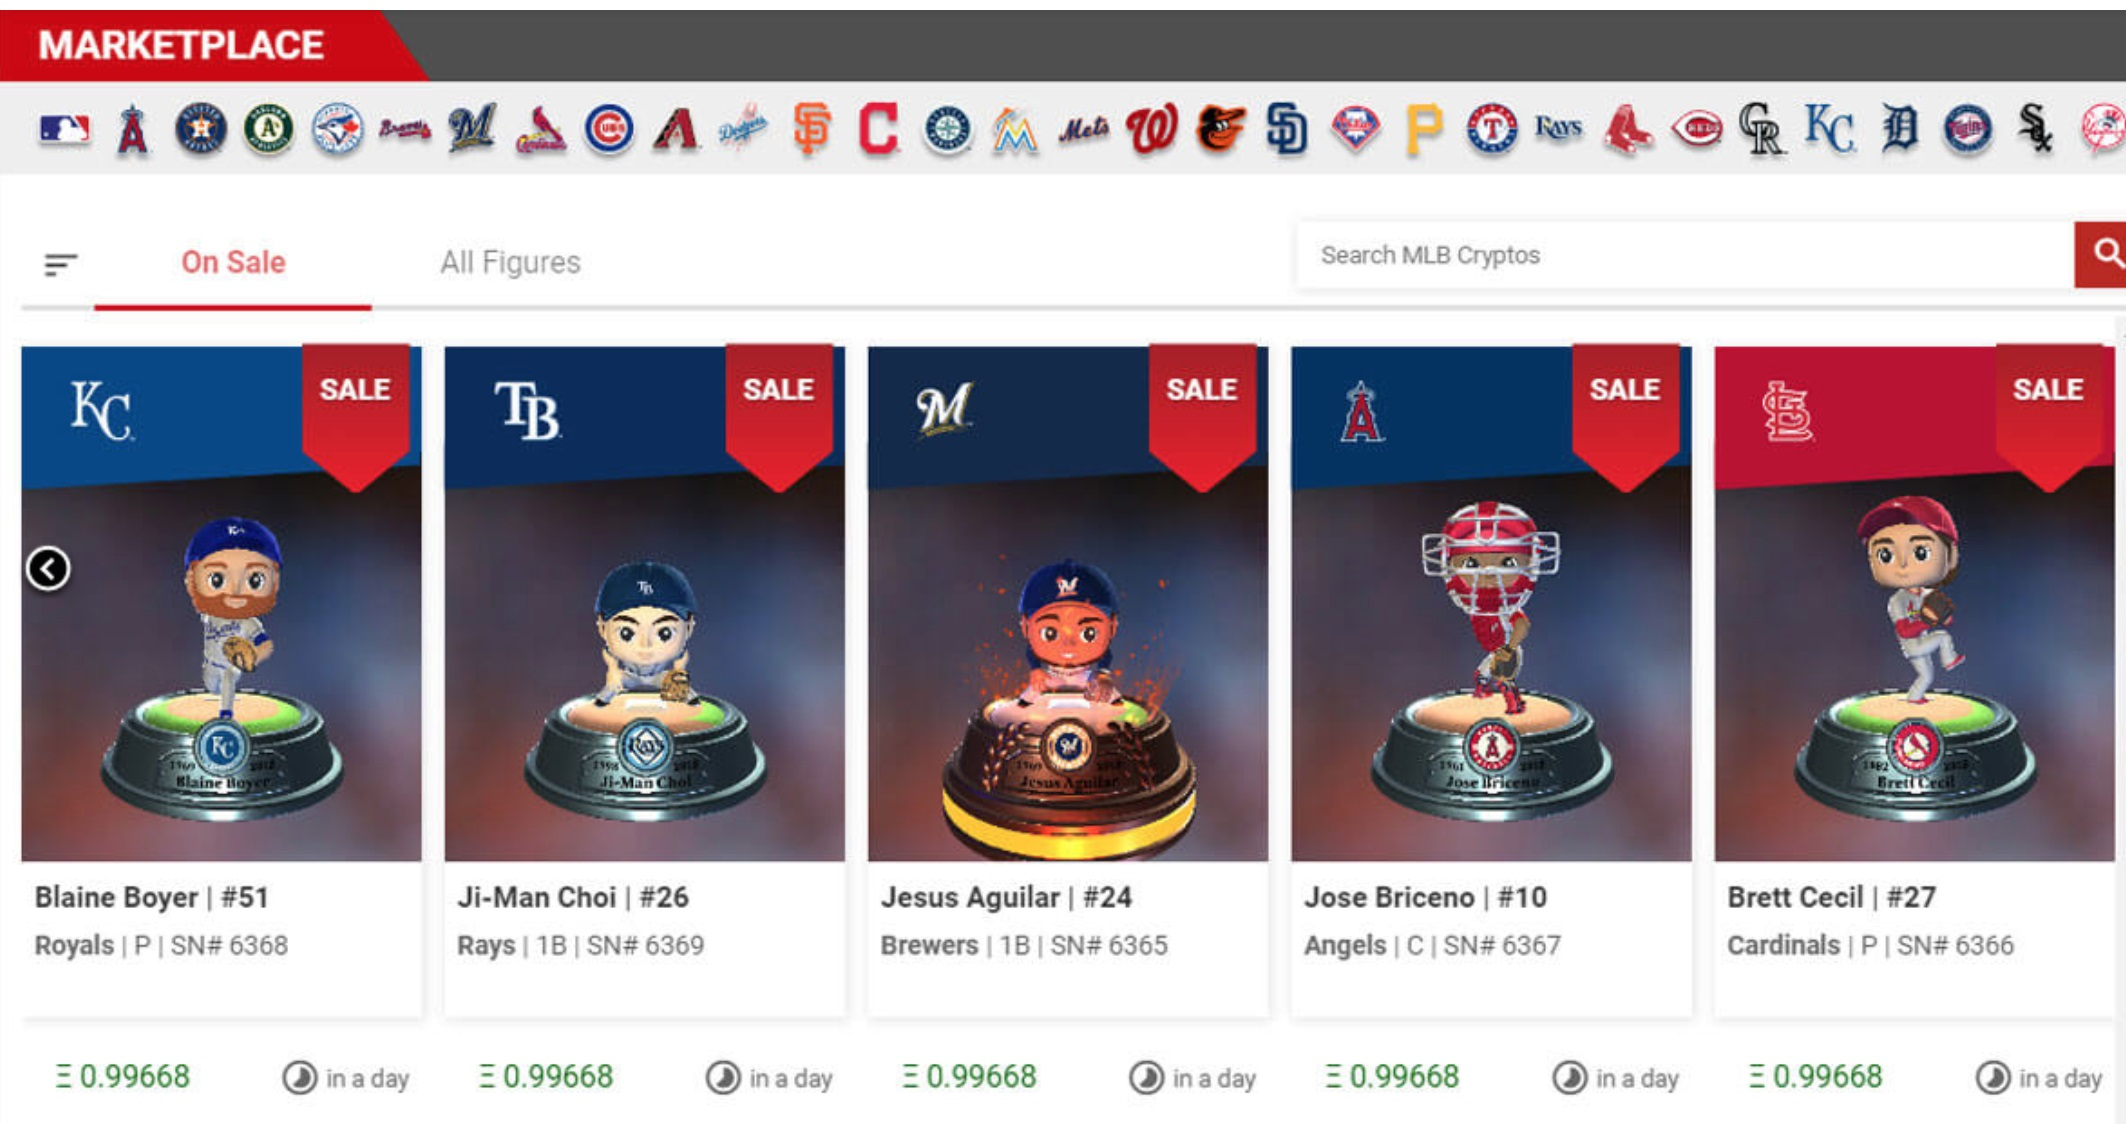 MLB Champions Marketplace General Layout